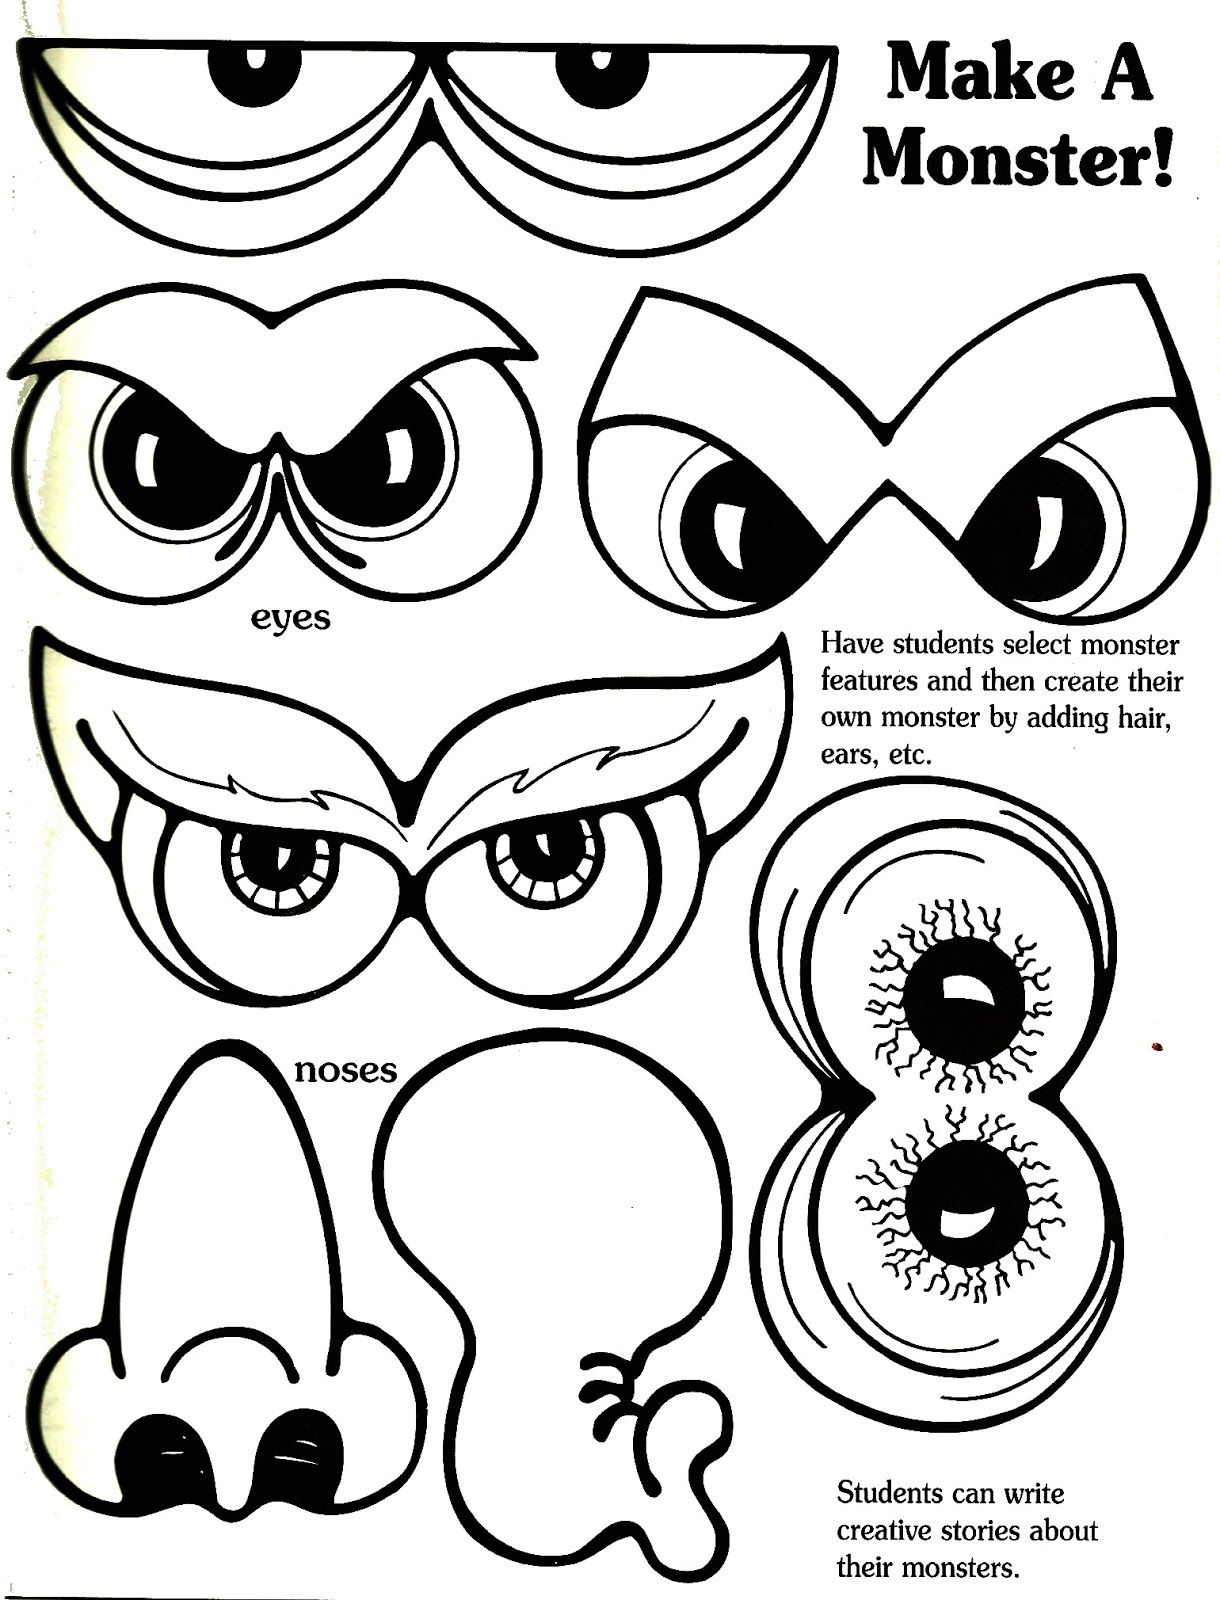 Print Out The Face Sheets On Magnet Paper You Can Print